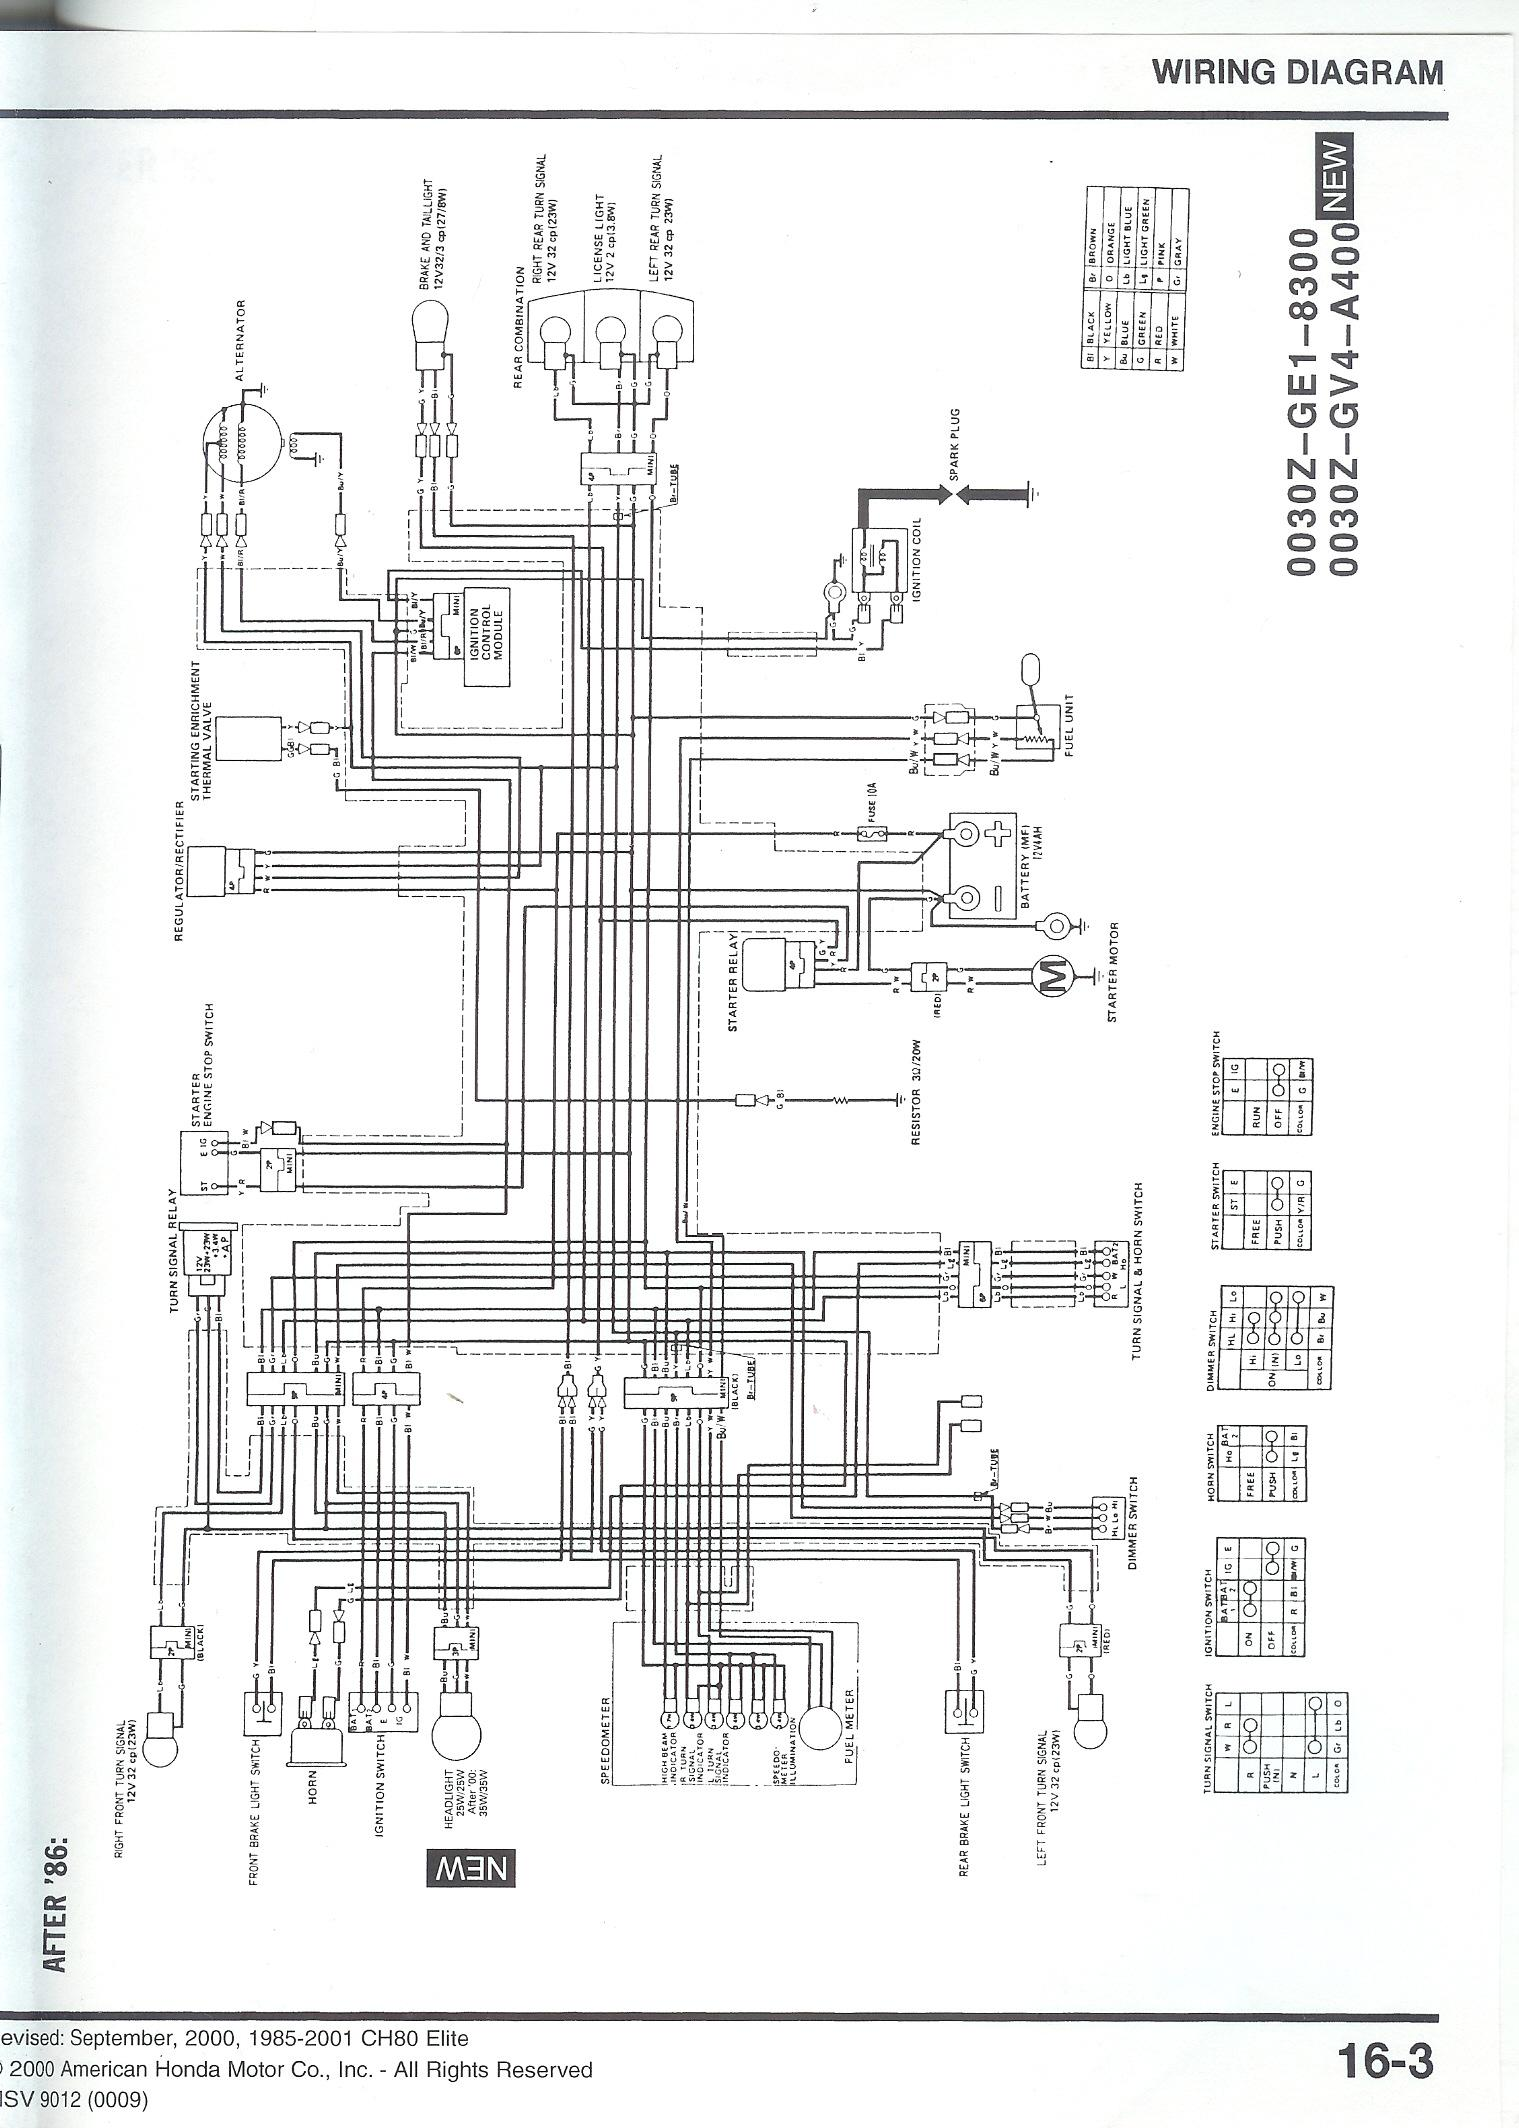 Ram Fuse Layout Dodgeforum Inside Dodge Ram Fuse Box Diagram additionally Maxresdefault in addition Scania Truck Electric Training Manual likewise Hqdefault likewise Maxresdefault. on headlight wiring diagram